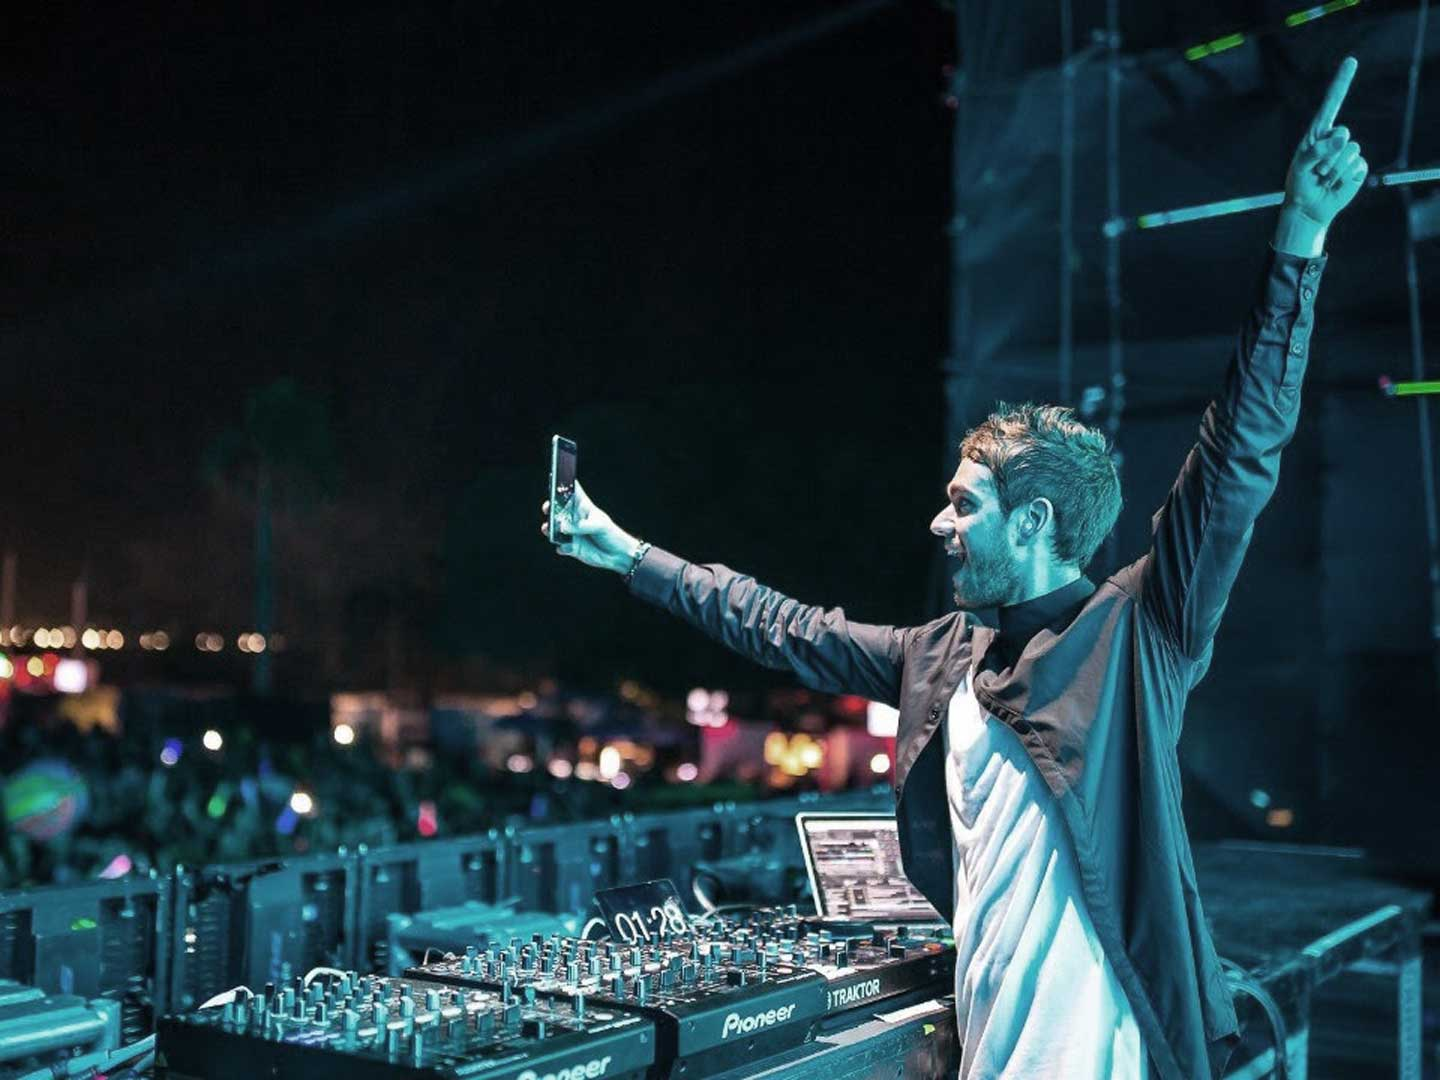 Zedd performing live at Ultra Music Festival 2017